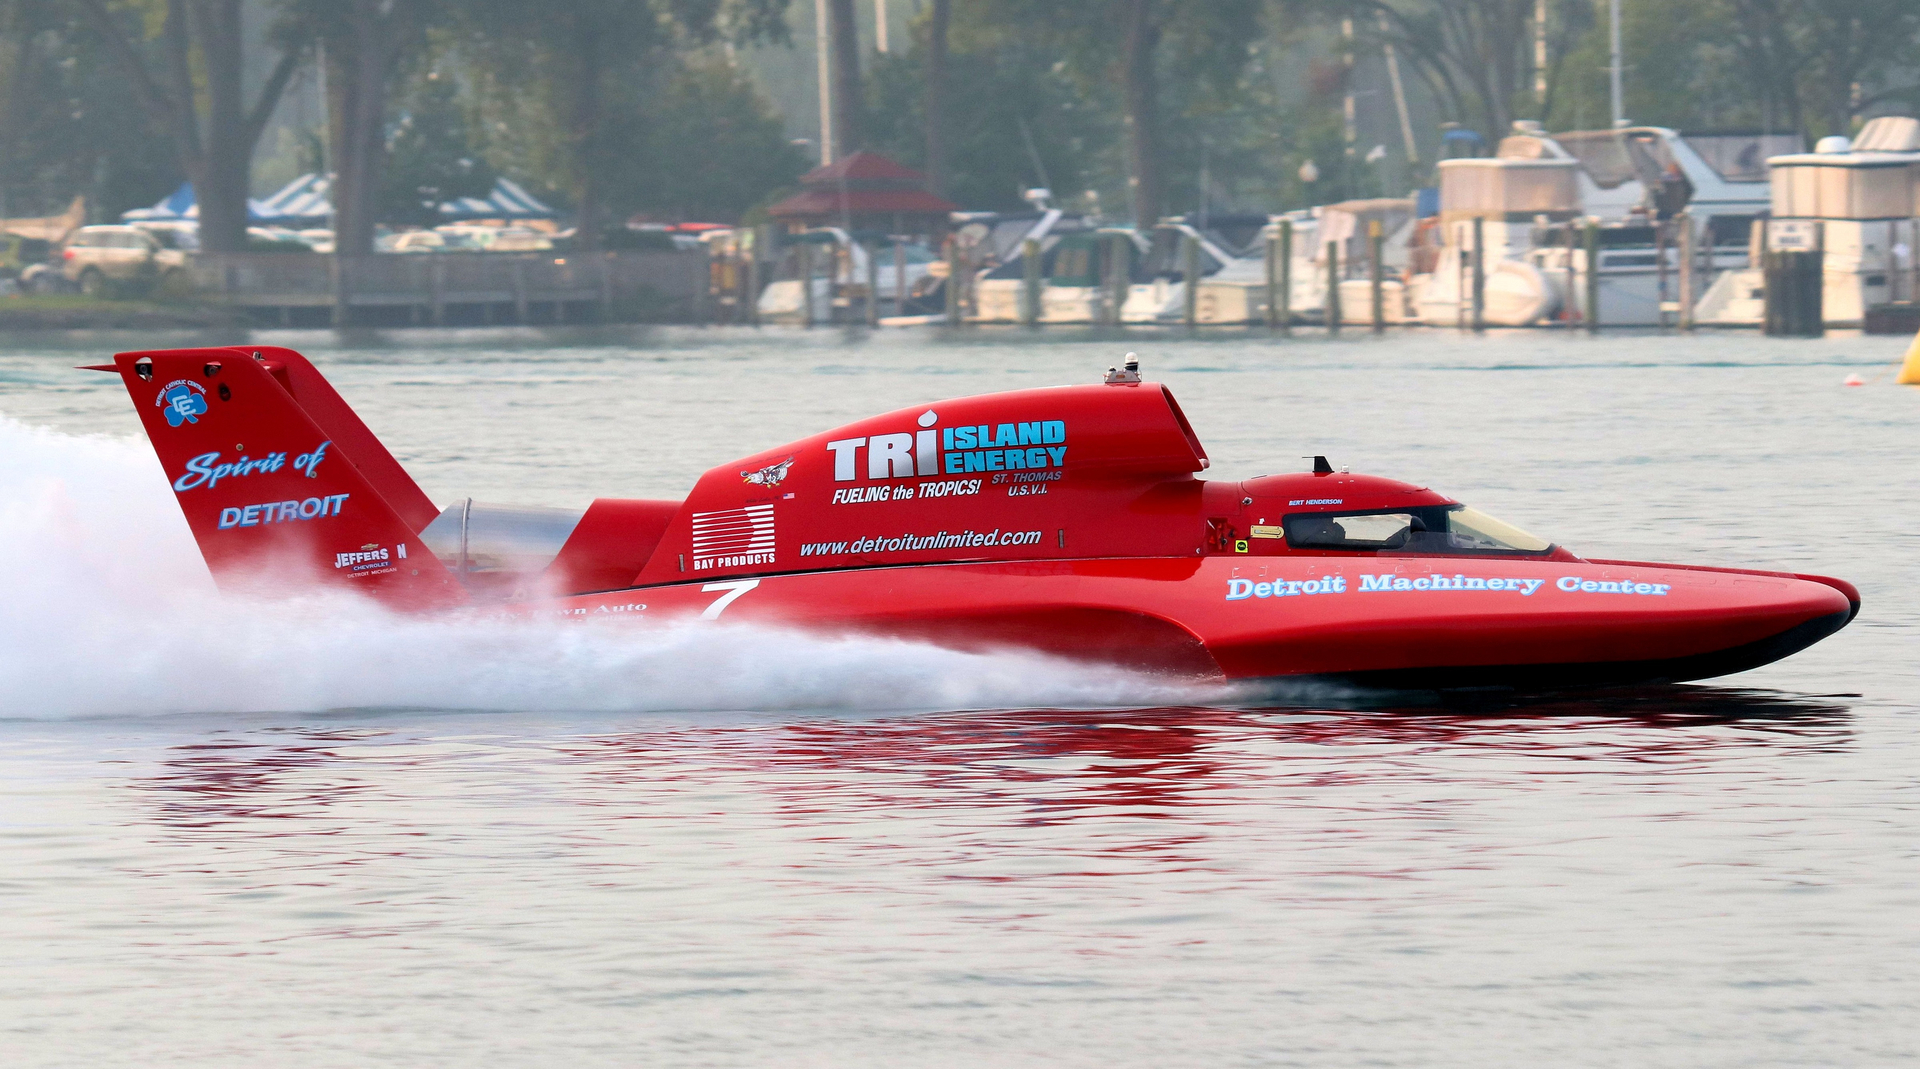 Unlimited Newsjournal - Hydroplane Racing, Hydroplanes, H1 Unlimited